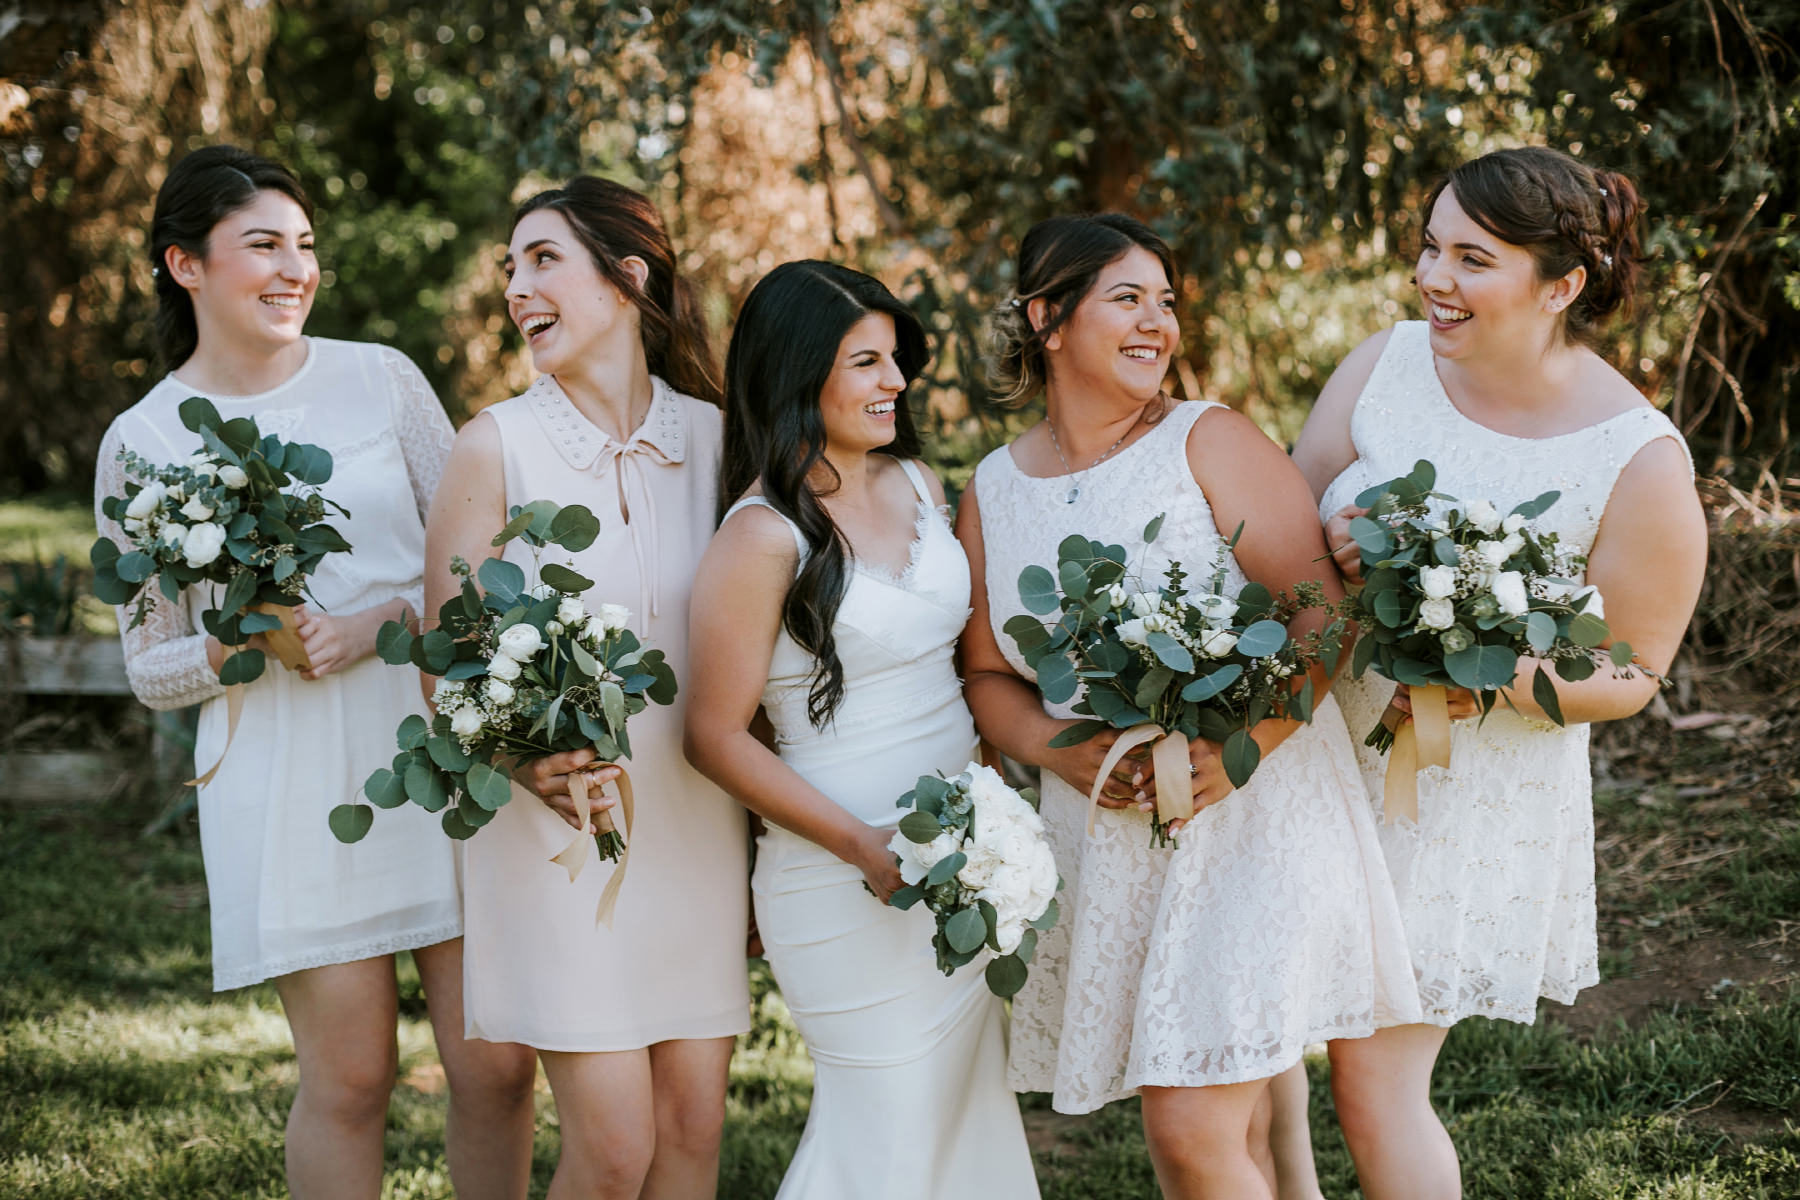 Bridesmaids with mix match white dresses and eucalyptus greenery bouquets